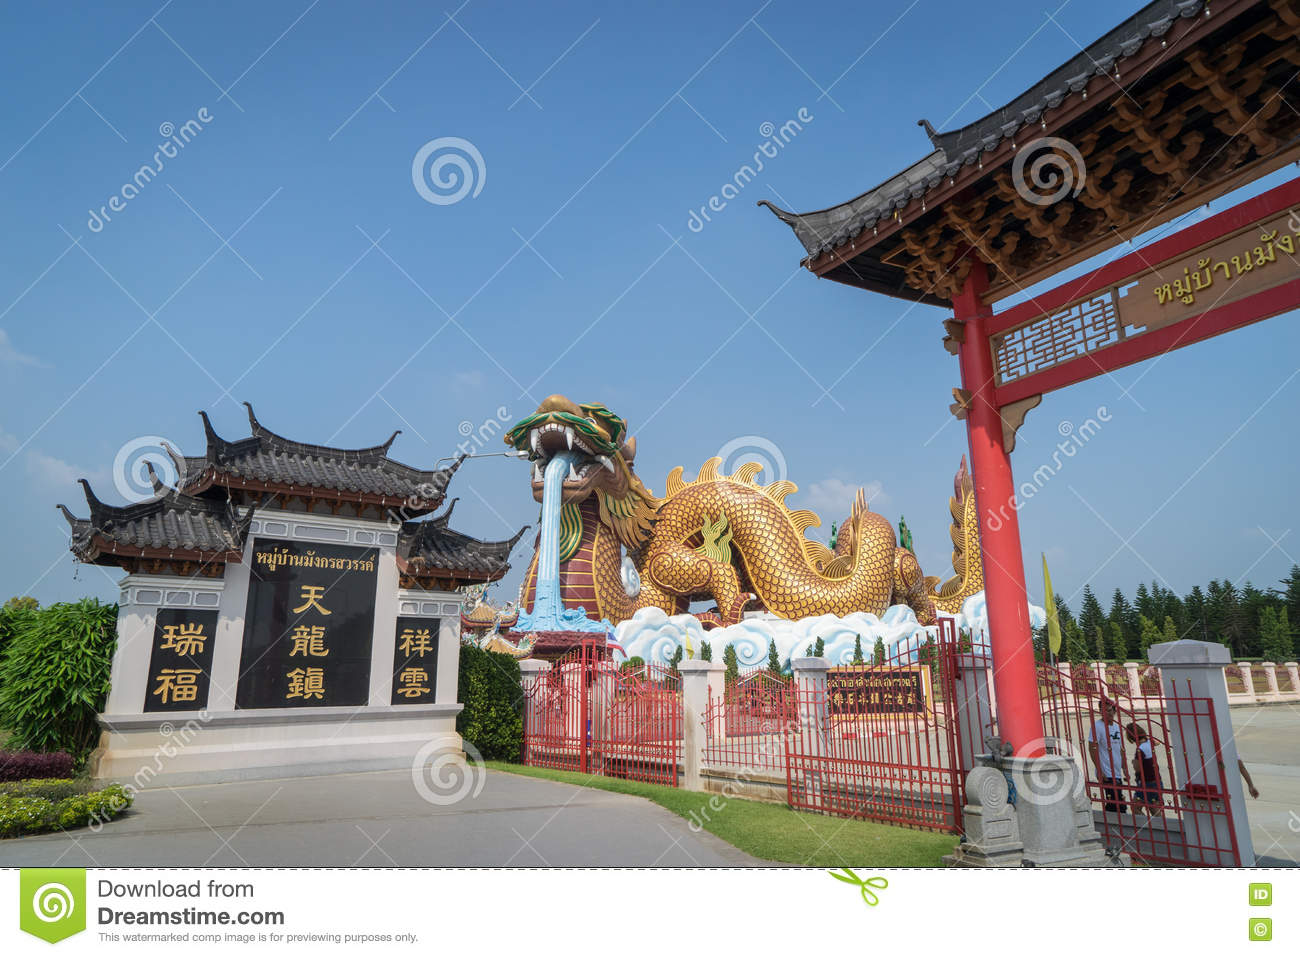 Giant Dragon Statue Giant Dragon Statue Editorial Stock Photo Image Of Beautiful